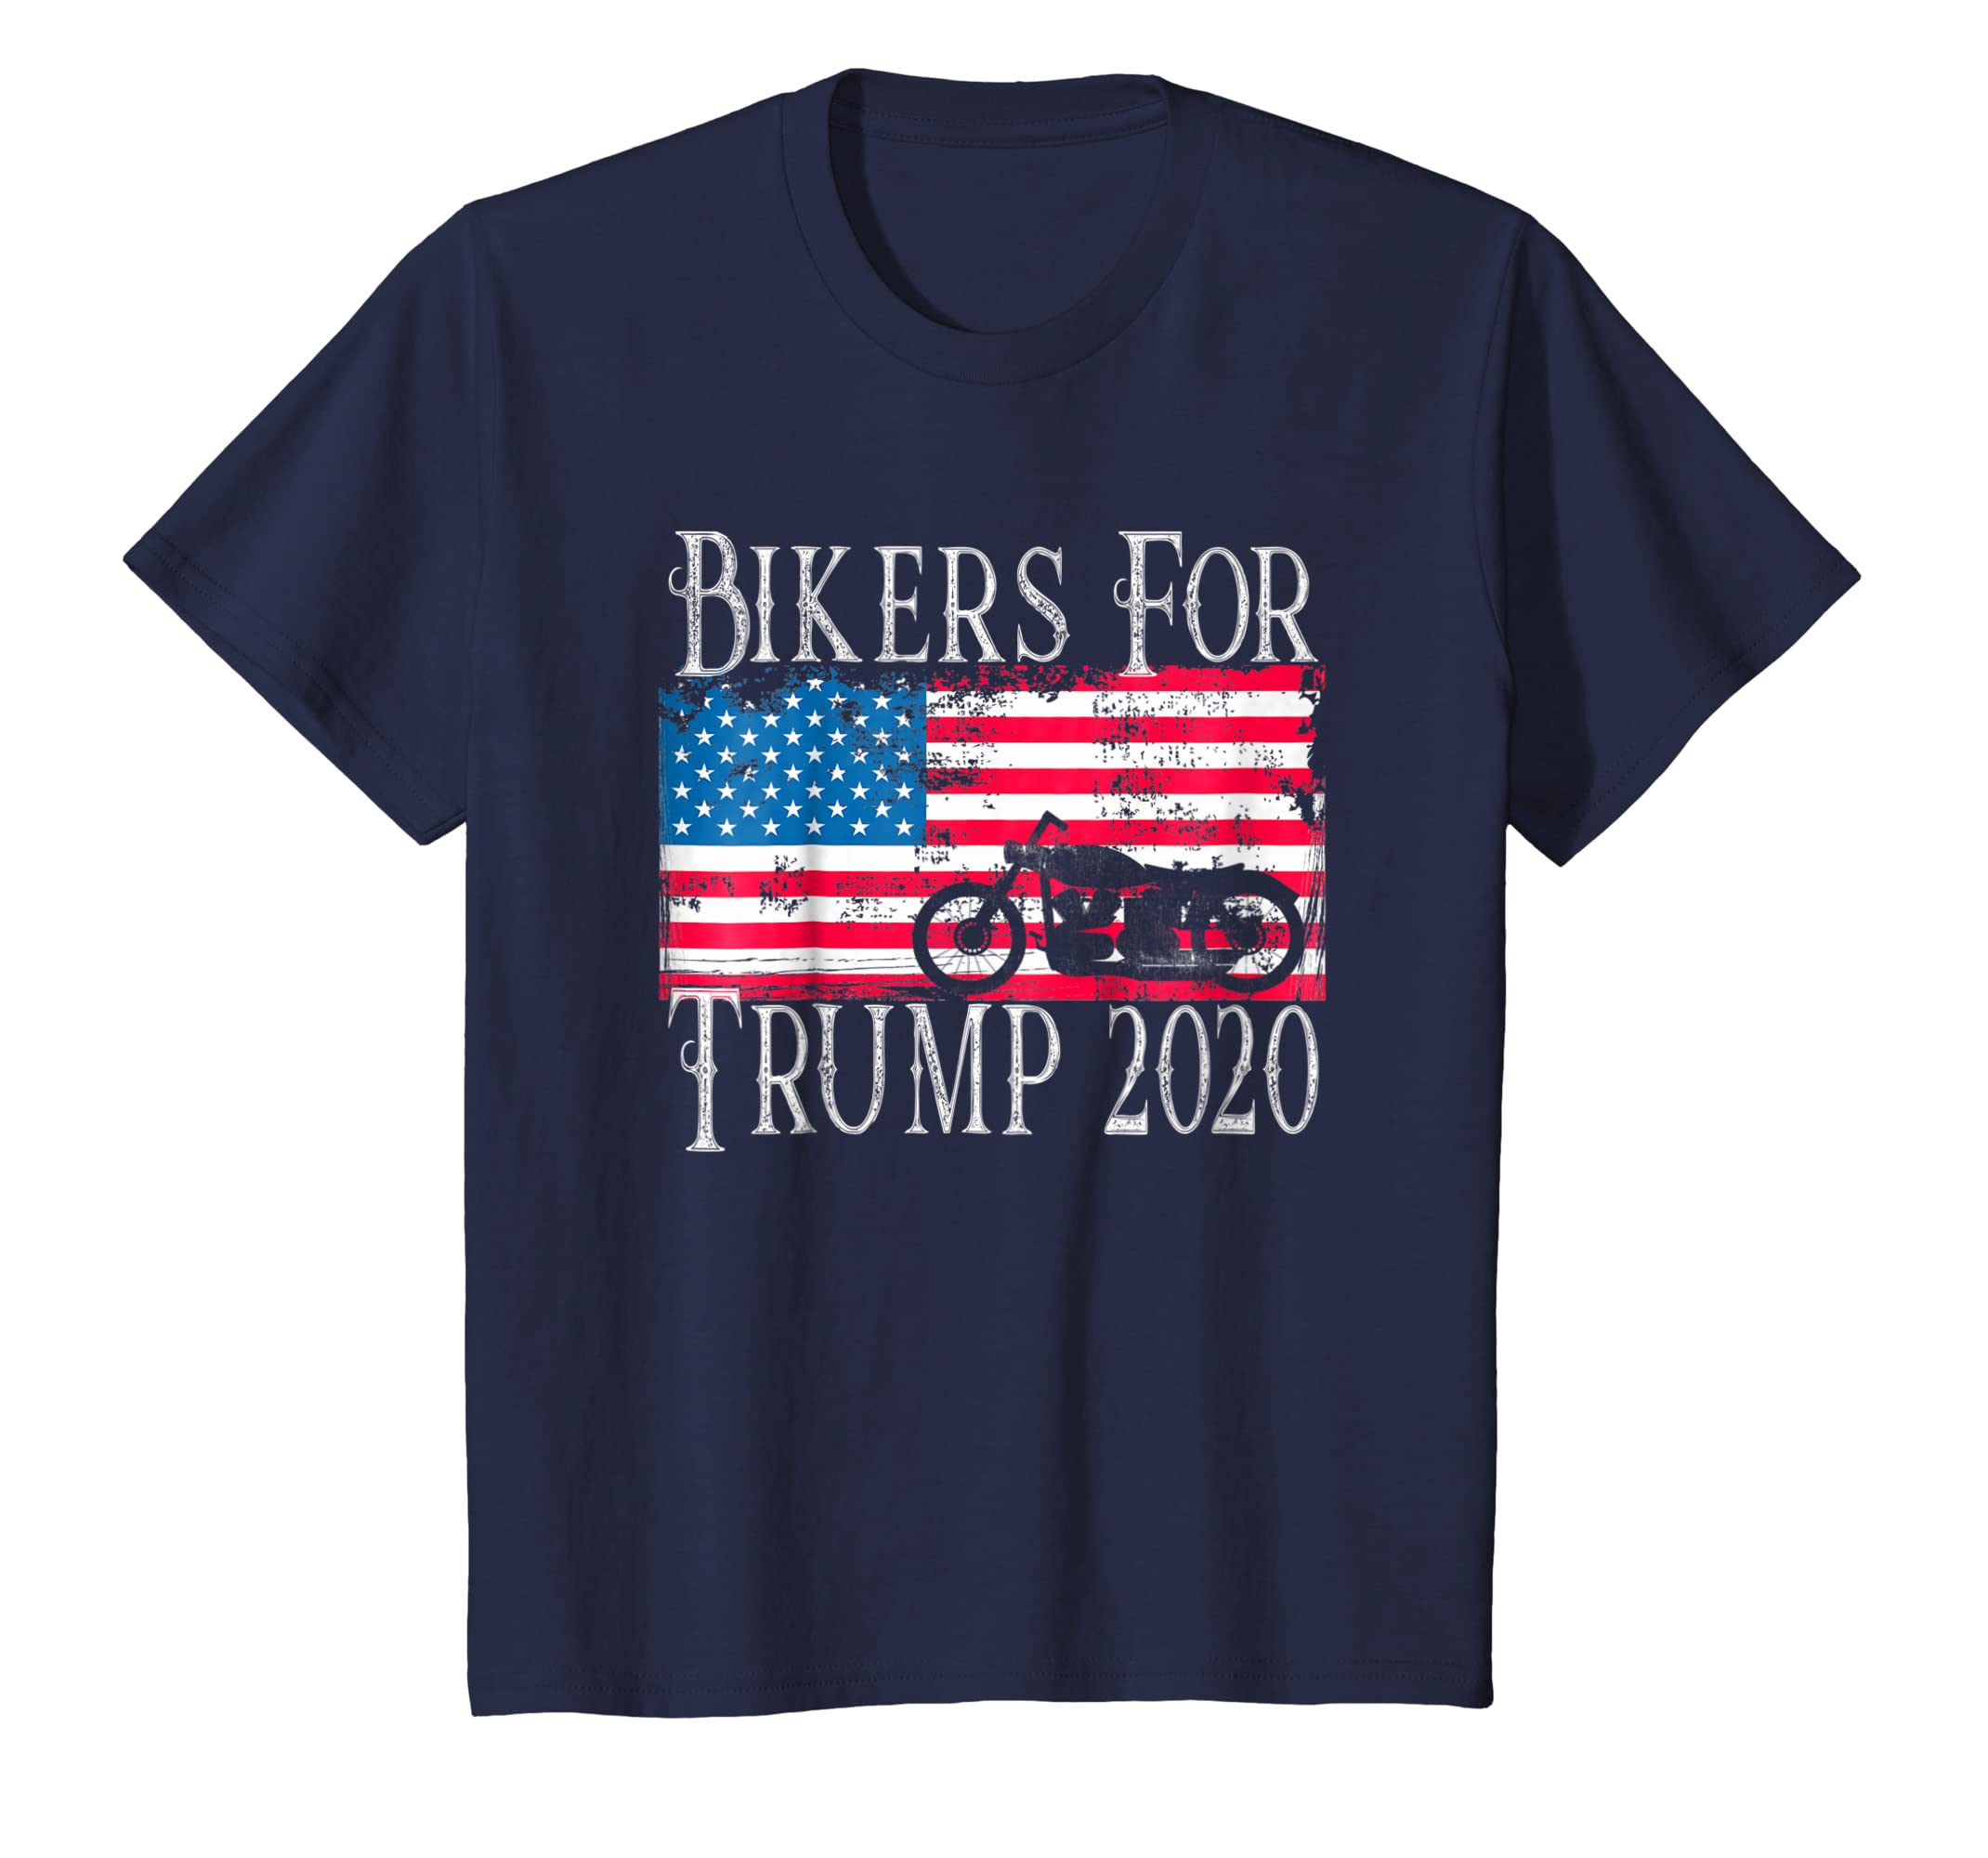 Bikers for Trump Shirt 2020 Motorcycle Rally Reelect Donald